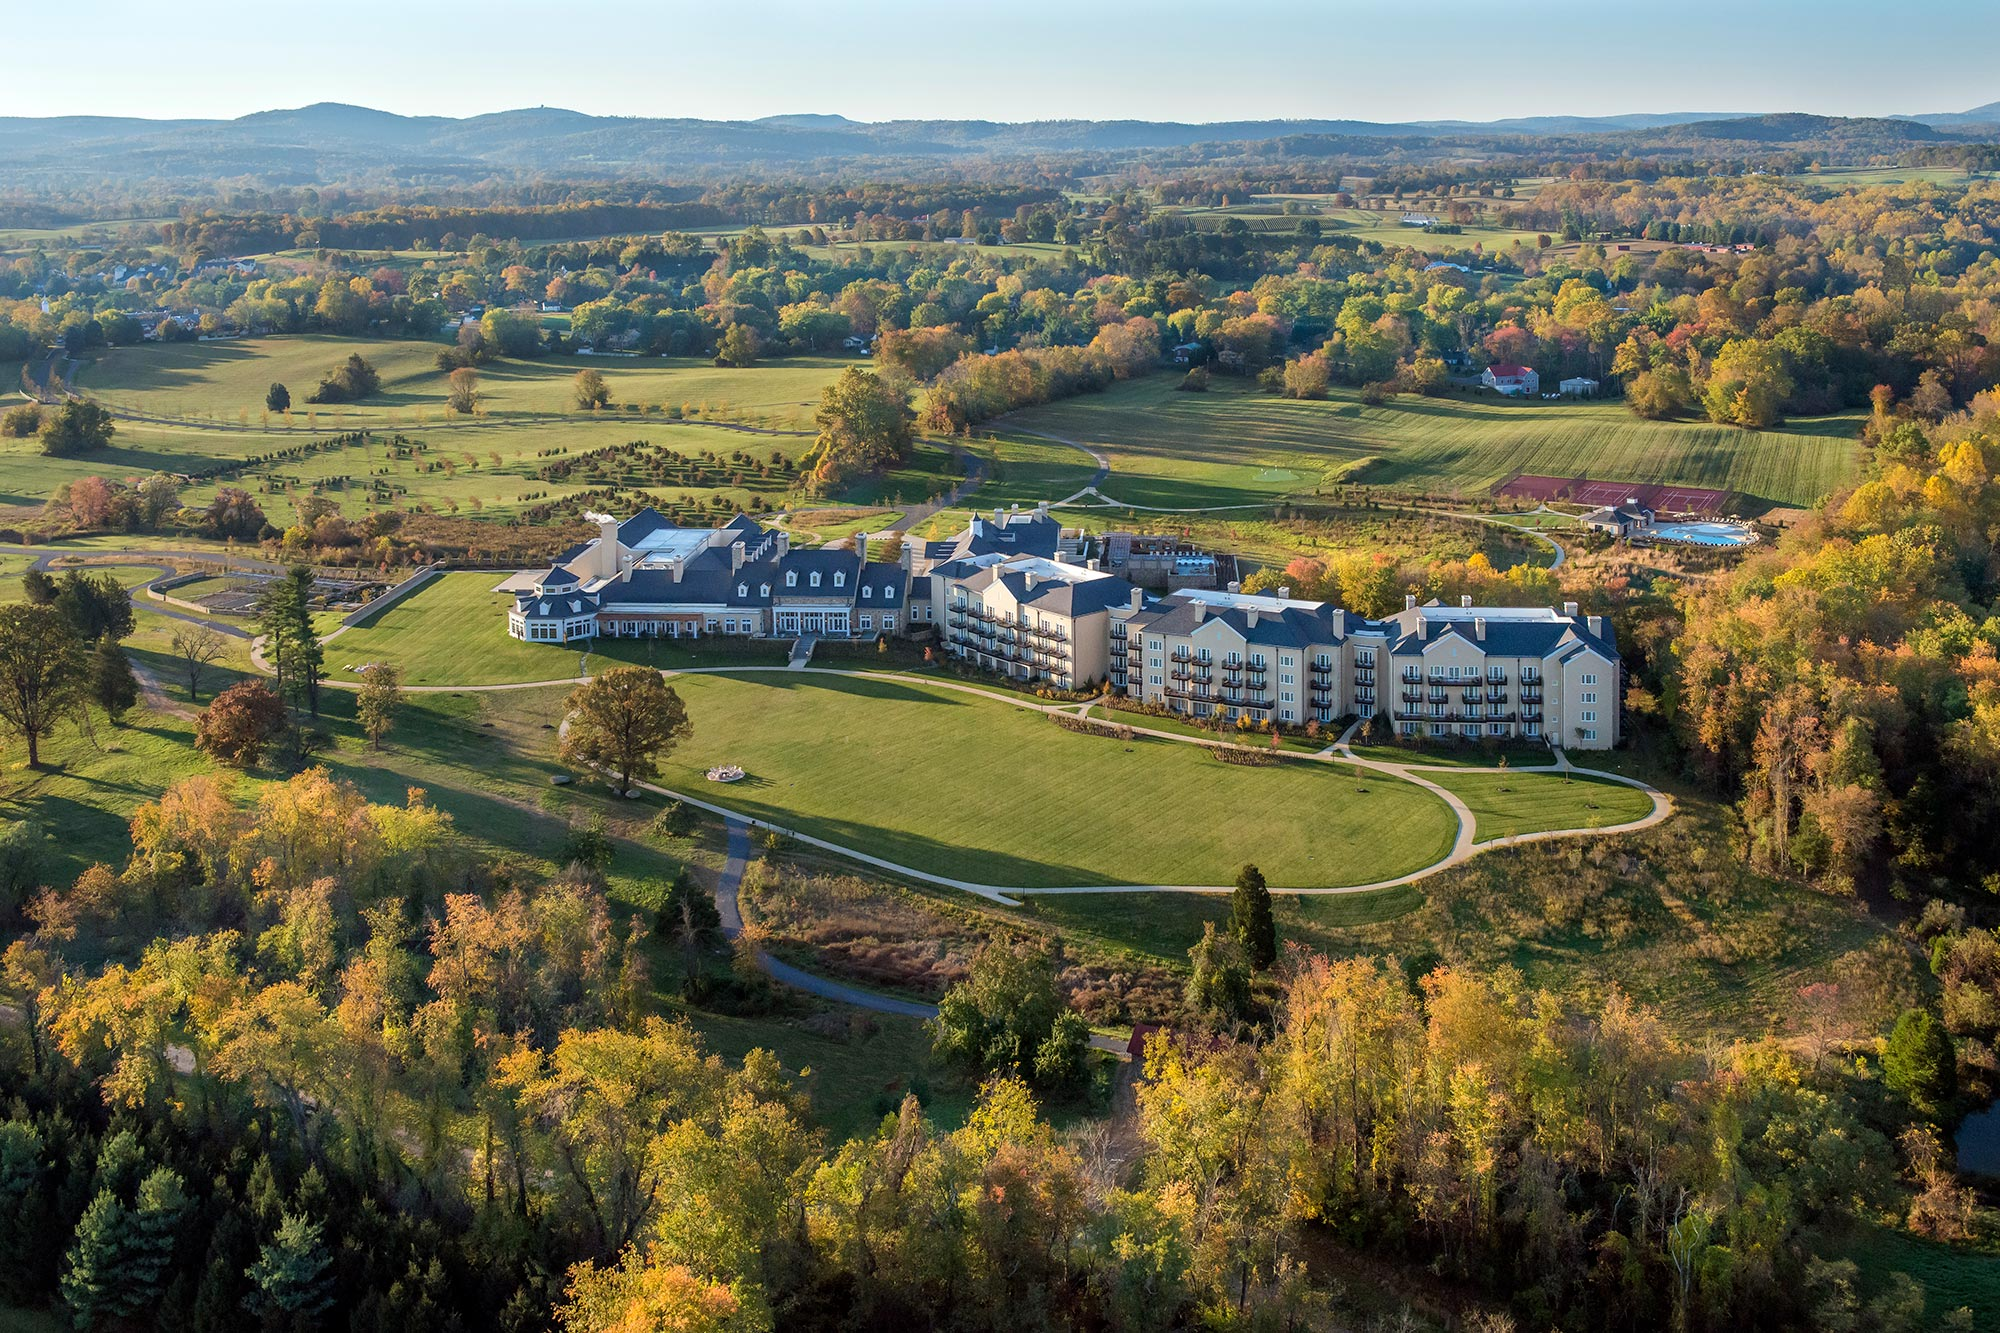 aerial view of Salamander Hotels & Resort